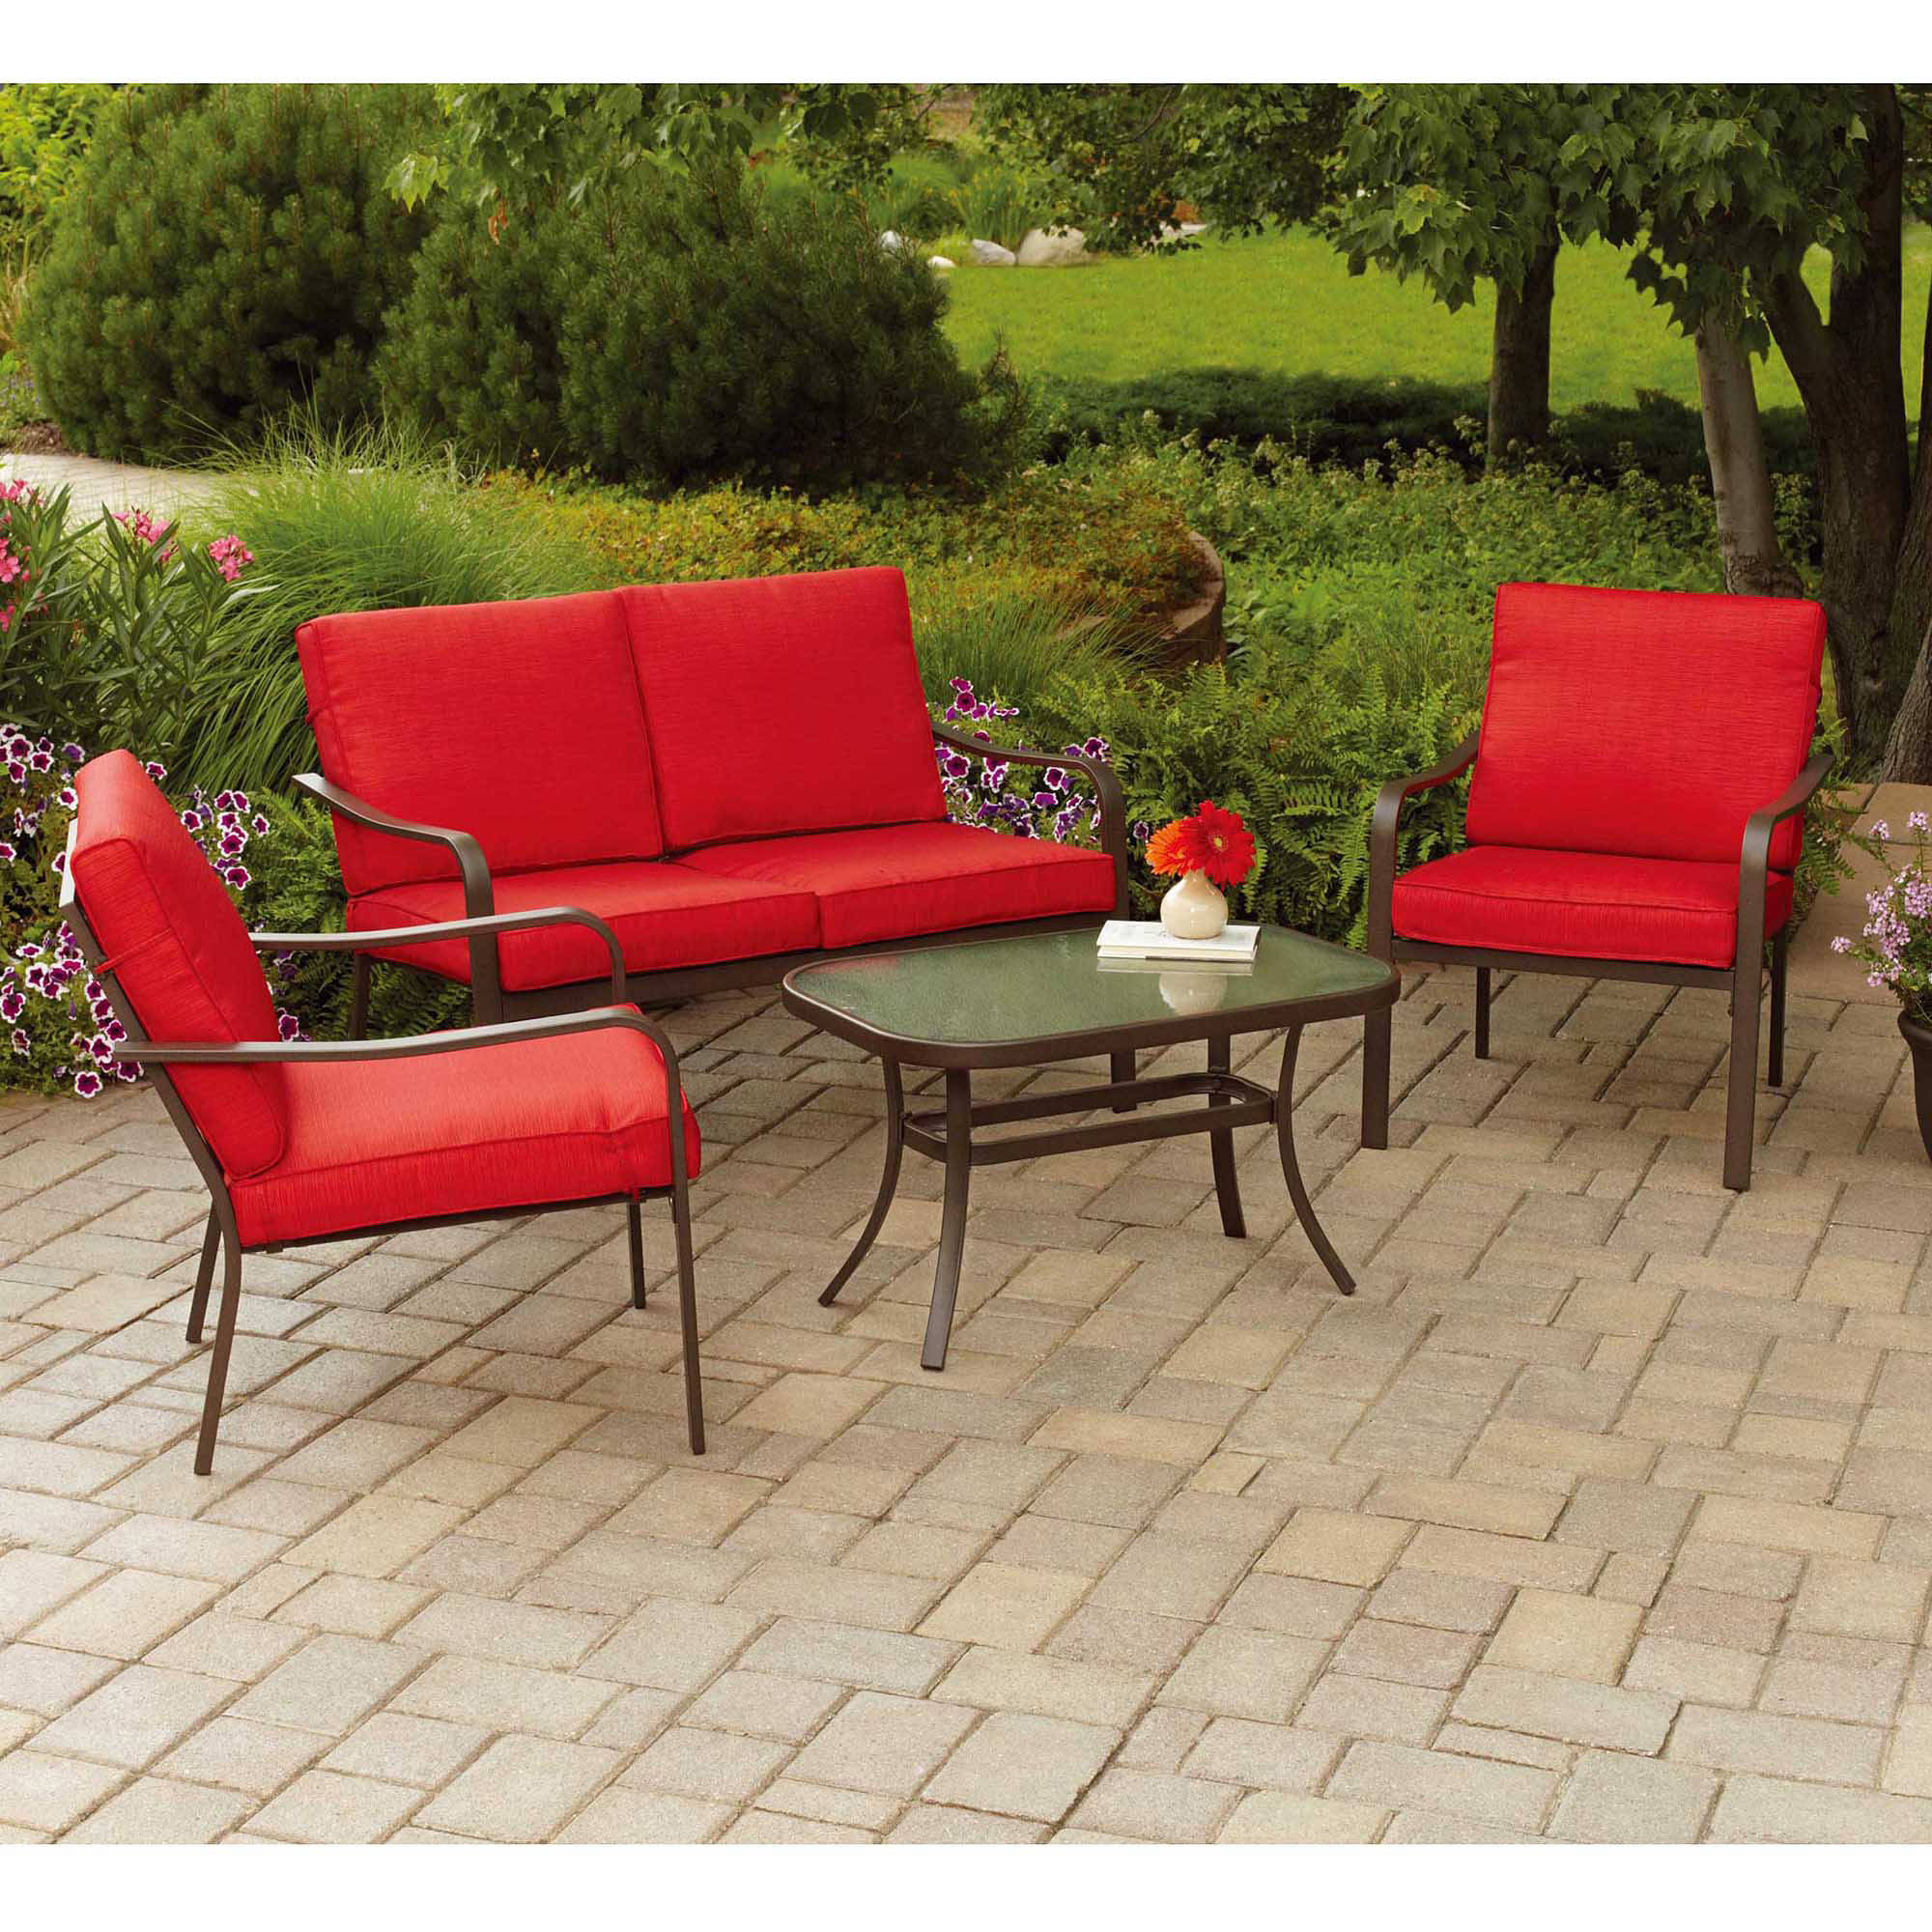 Mainstays stanton cushioned 4 piece patio conversation set red walmart com